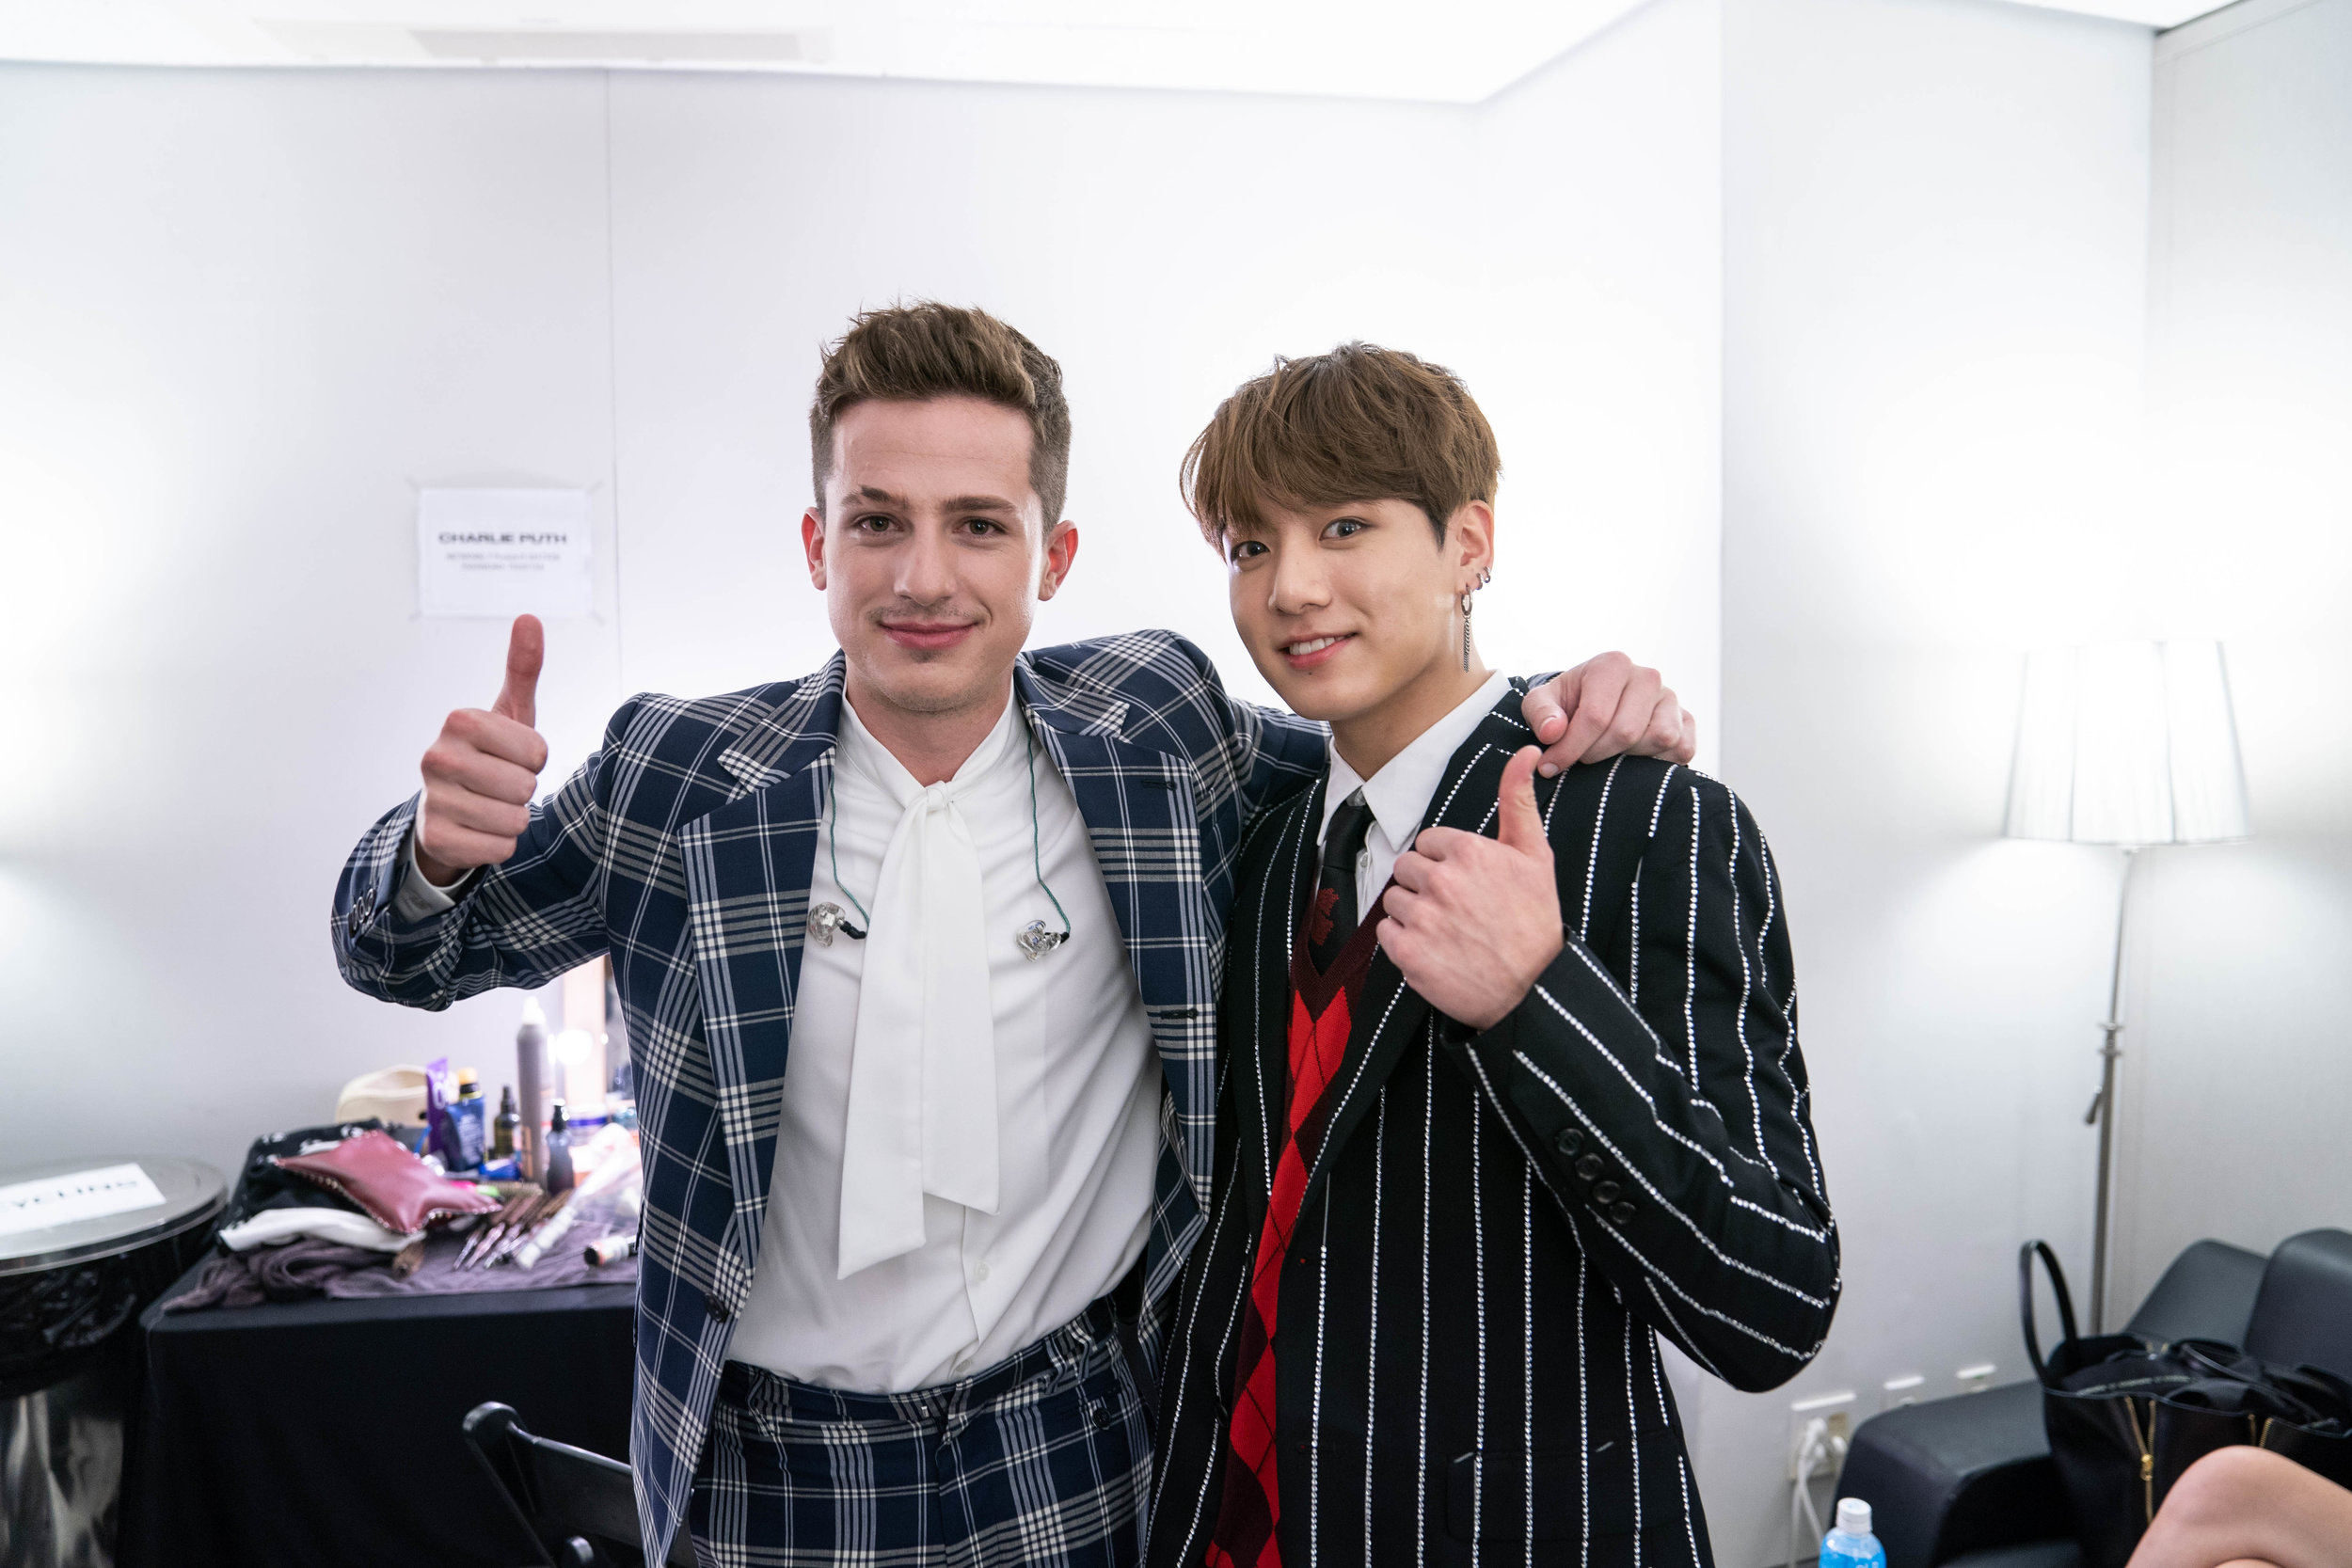 Junkook and Charlie before their performance in Seoul, 2018